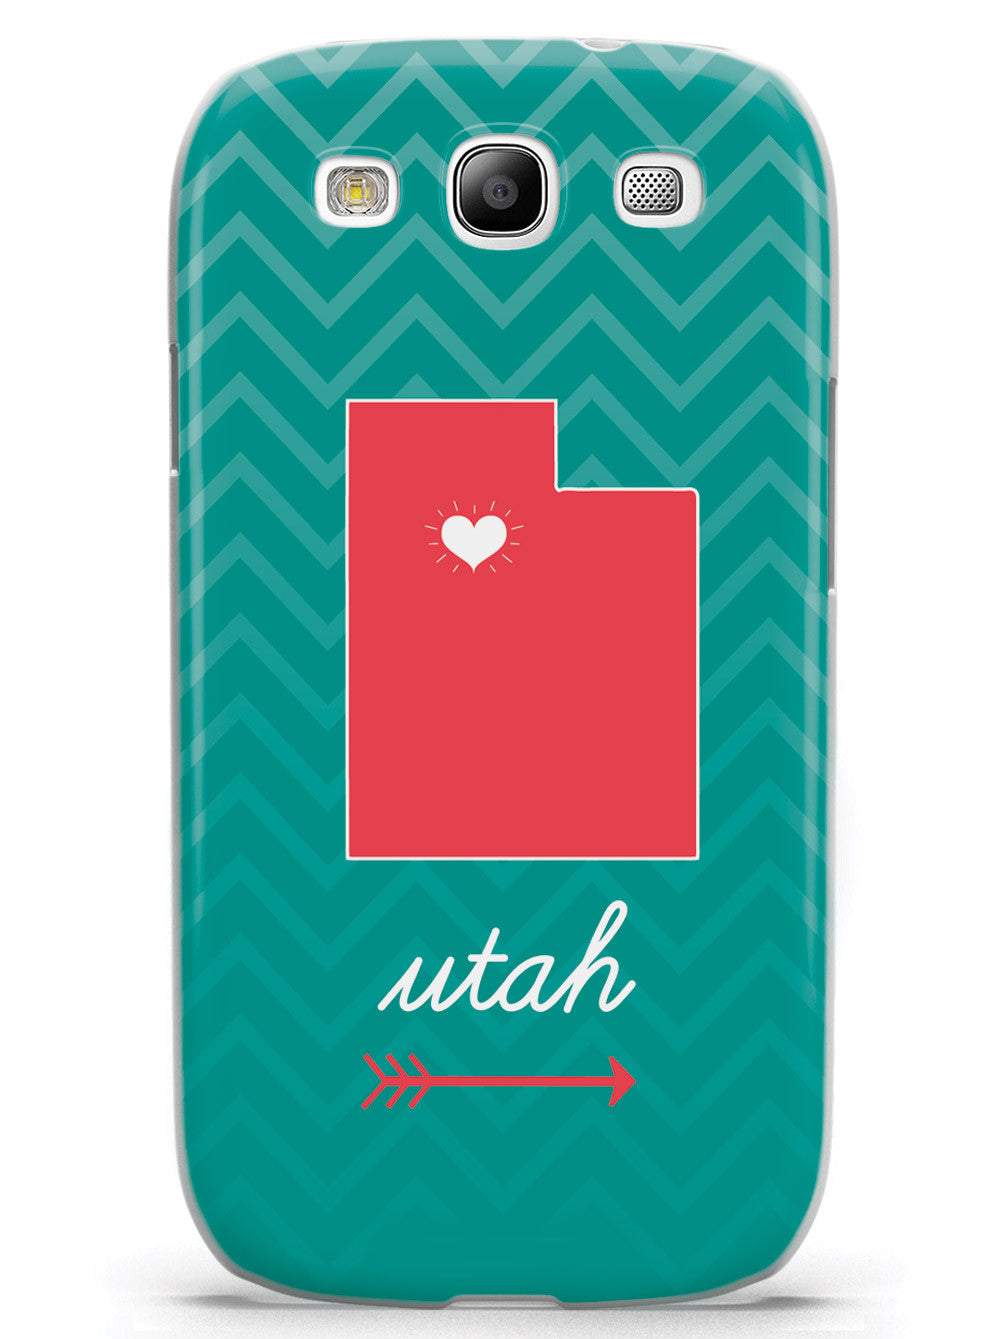 Utah Chevron Pattern State Case